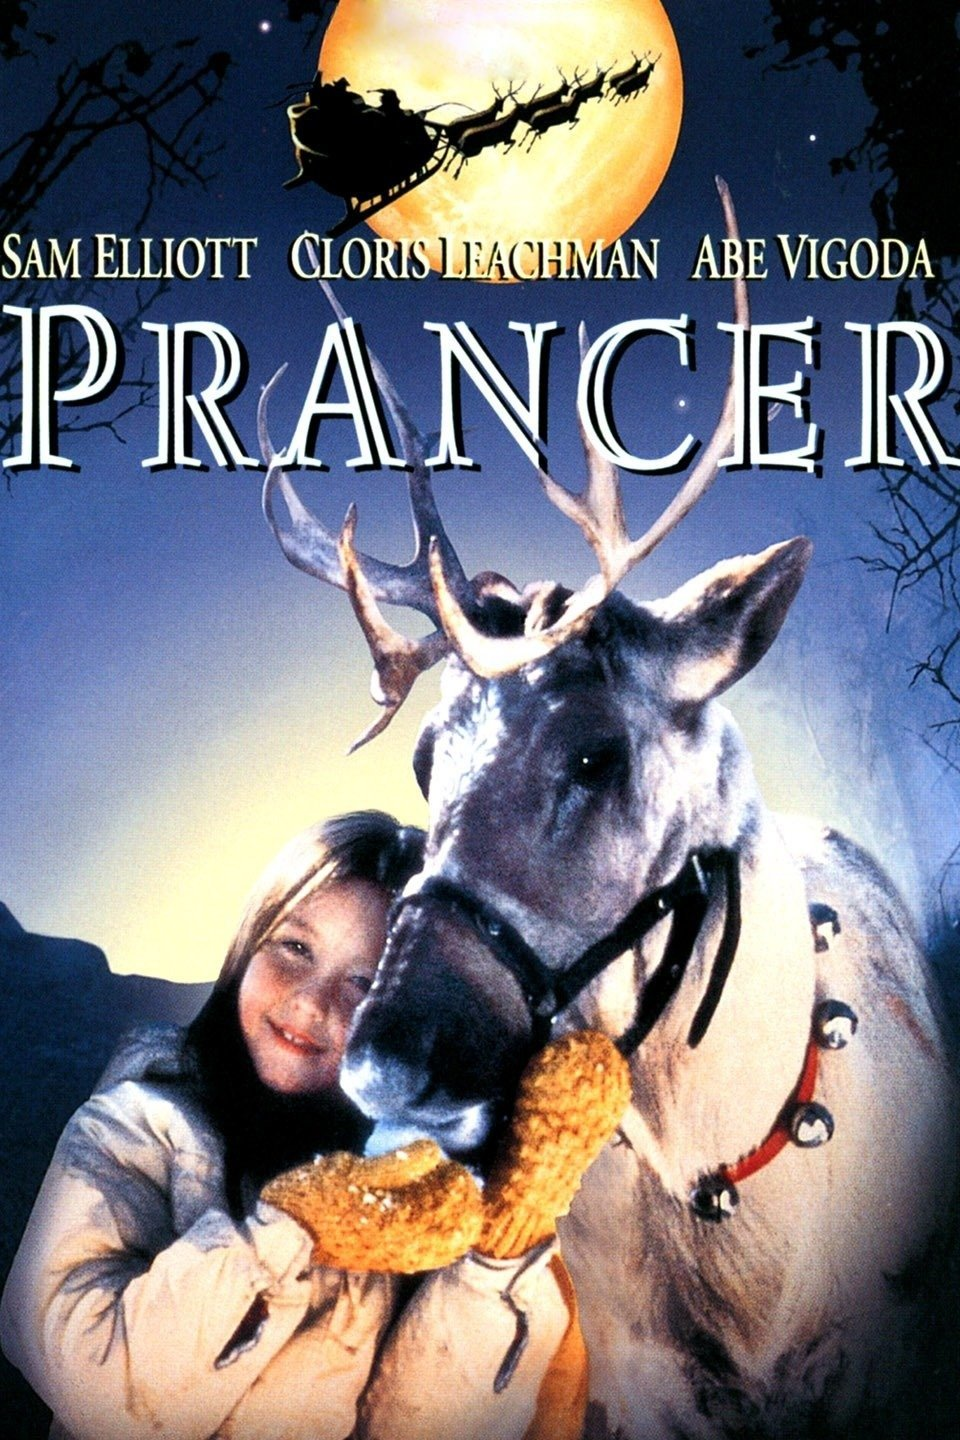 Prancer (1989) - This is one of my mom's favorites. I recently (as in this year) found out that she has a little crush on Sam Elliott, so now it all makes sense! My mom and her husband both agree that he ages well. ;)I did not like this movie as a kid. I thought it was super boring and that the little girl was annoying and that Sam Elliott was a meanie. He was, but turns out he had some issues. Spoiler alert: he worked it out.